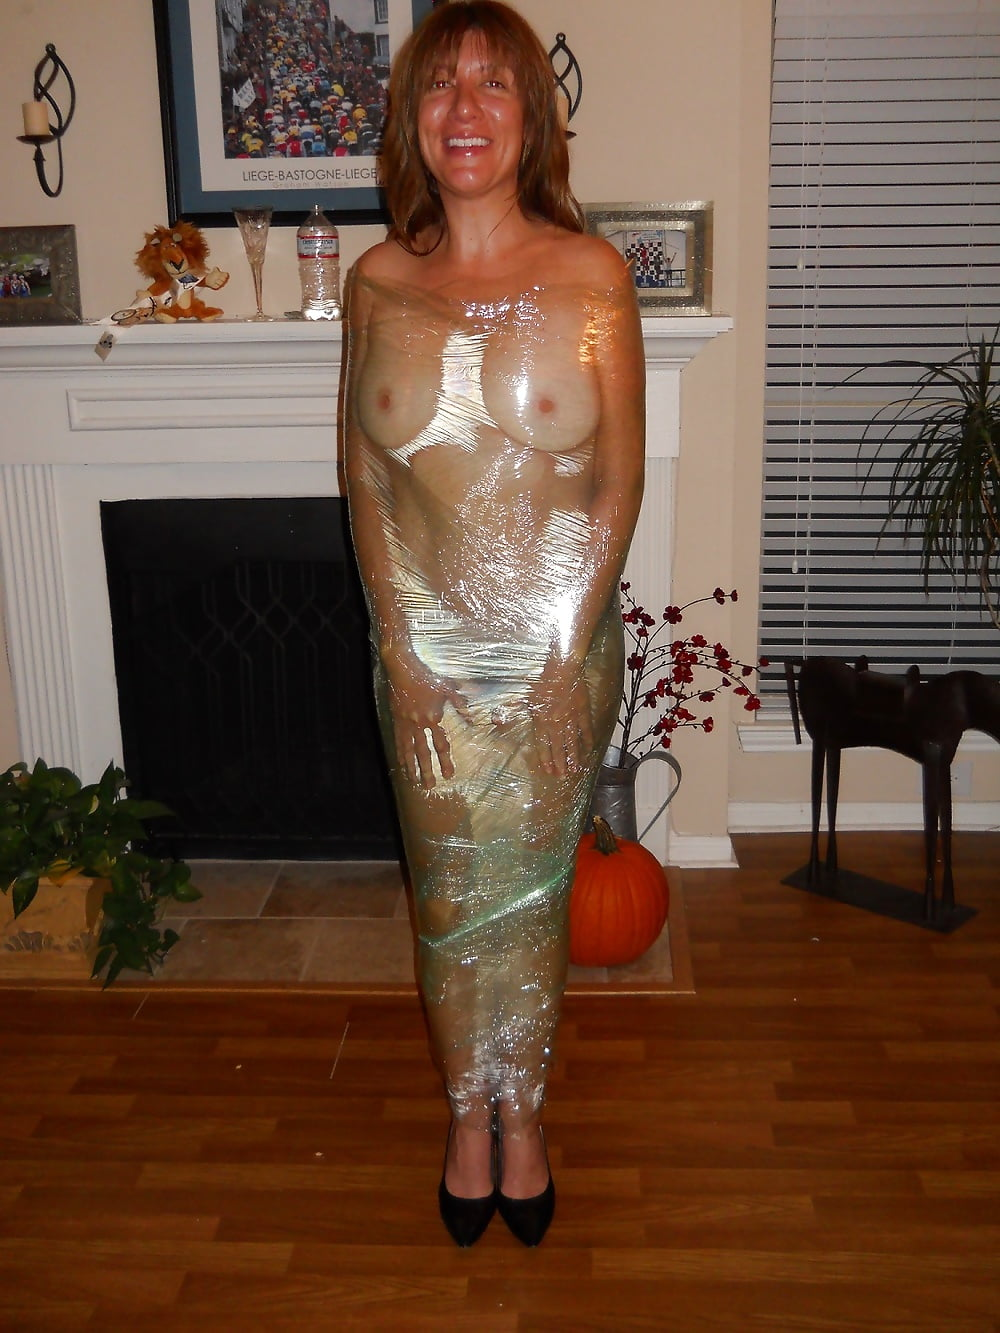 Callista amateur model wrapped up in saran wrap